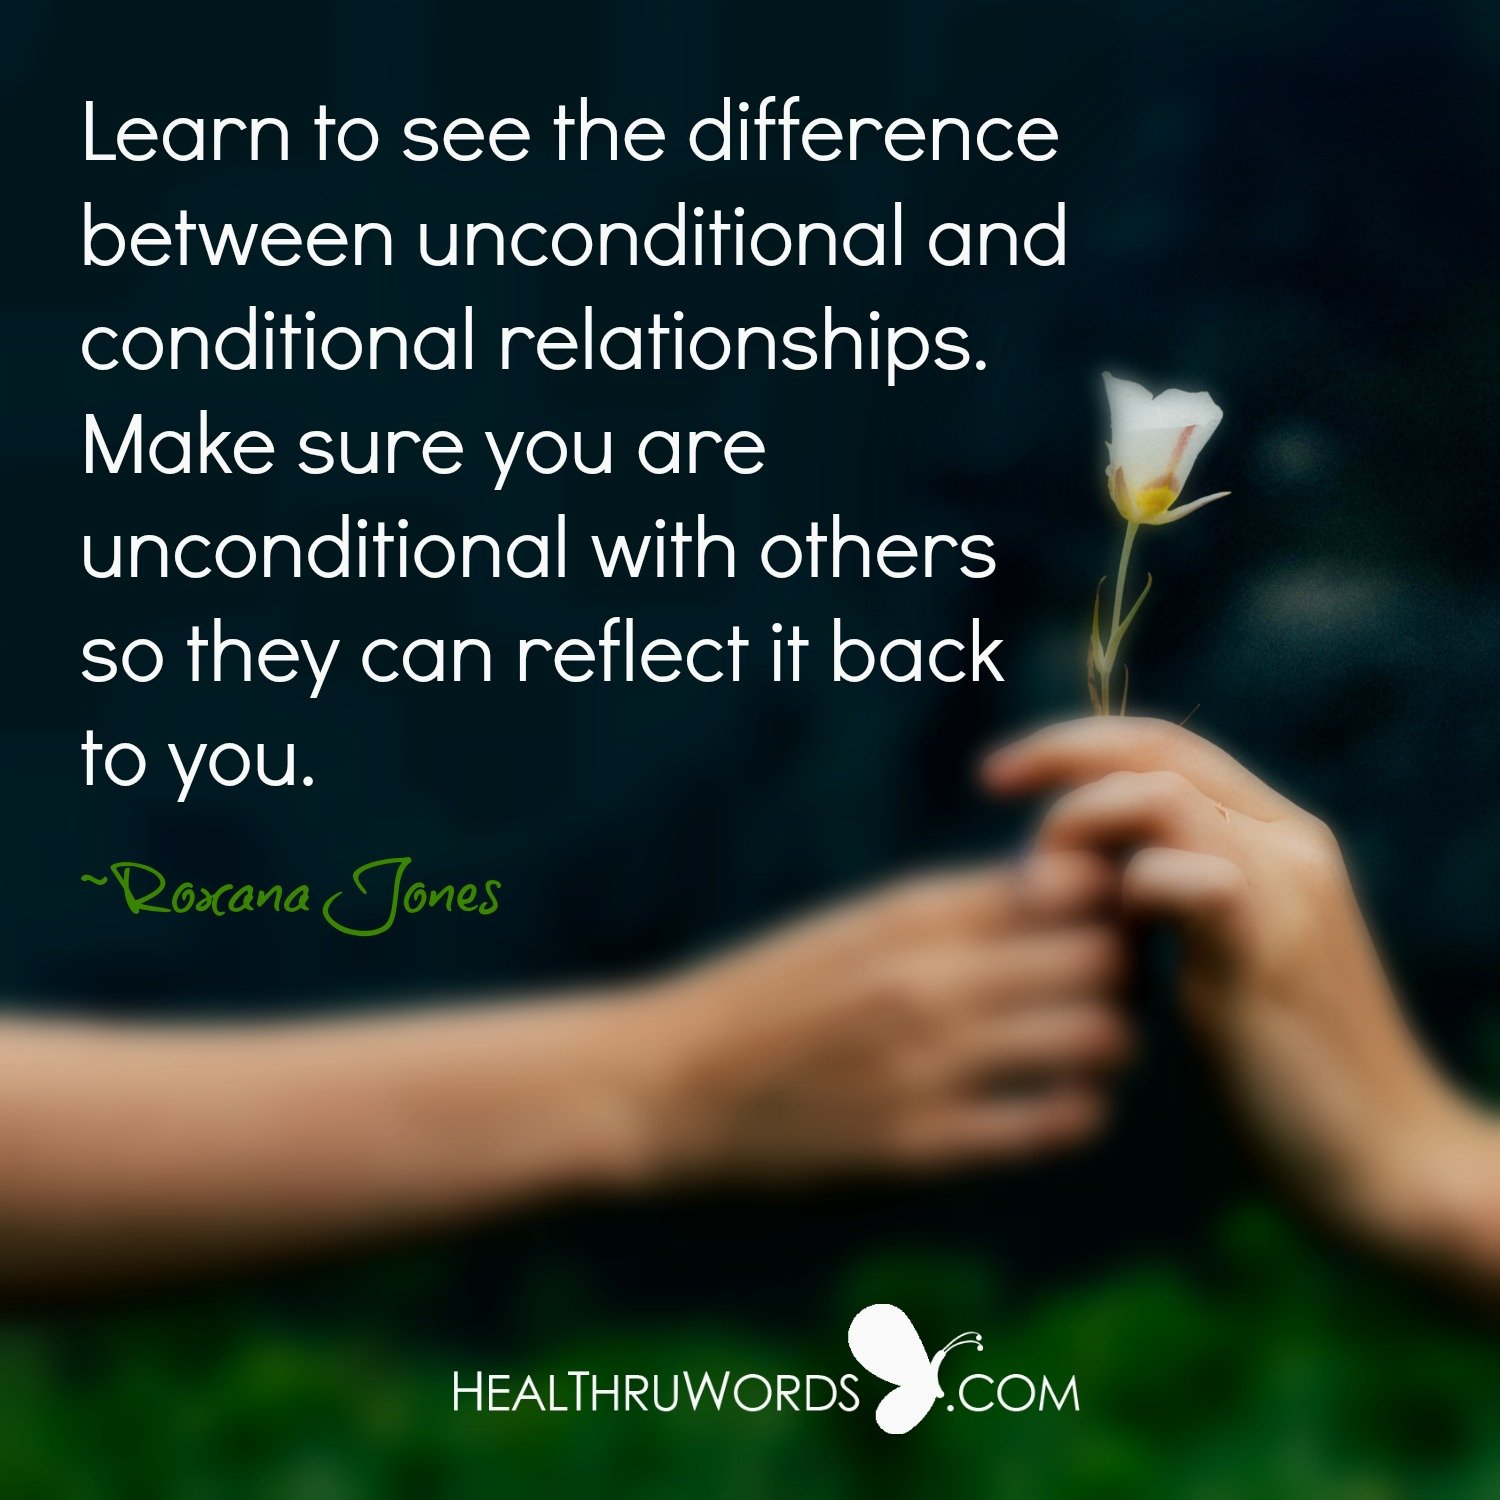 unconditional reflections inspirational images and quotes